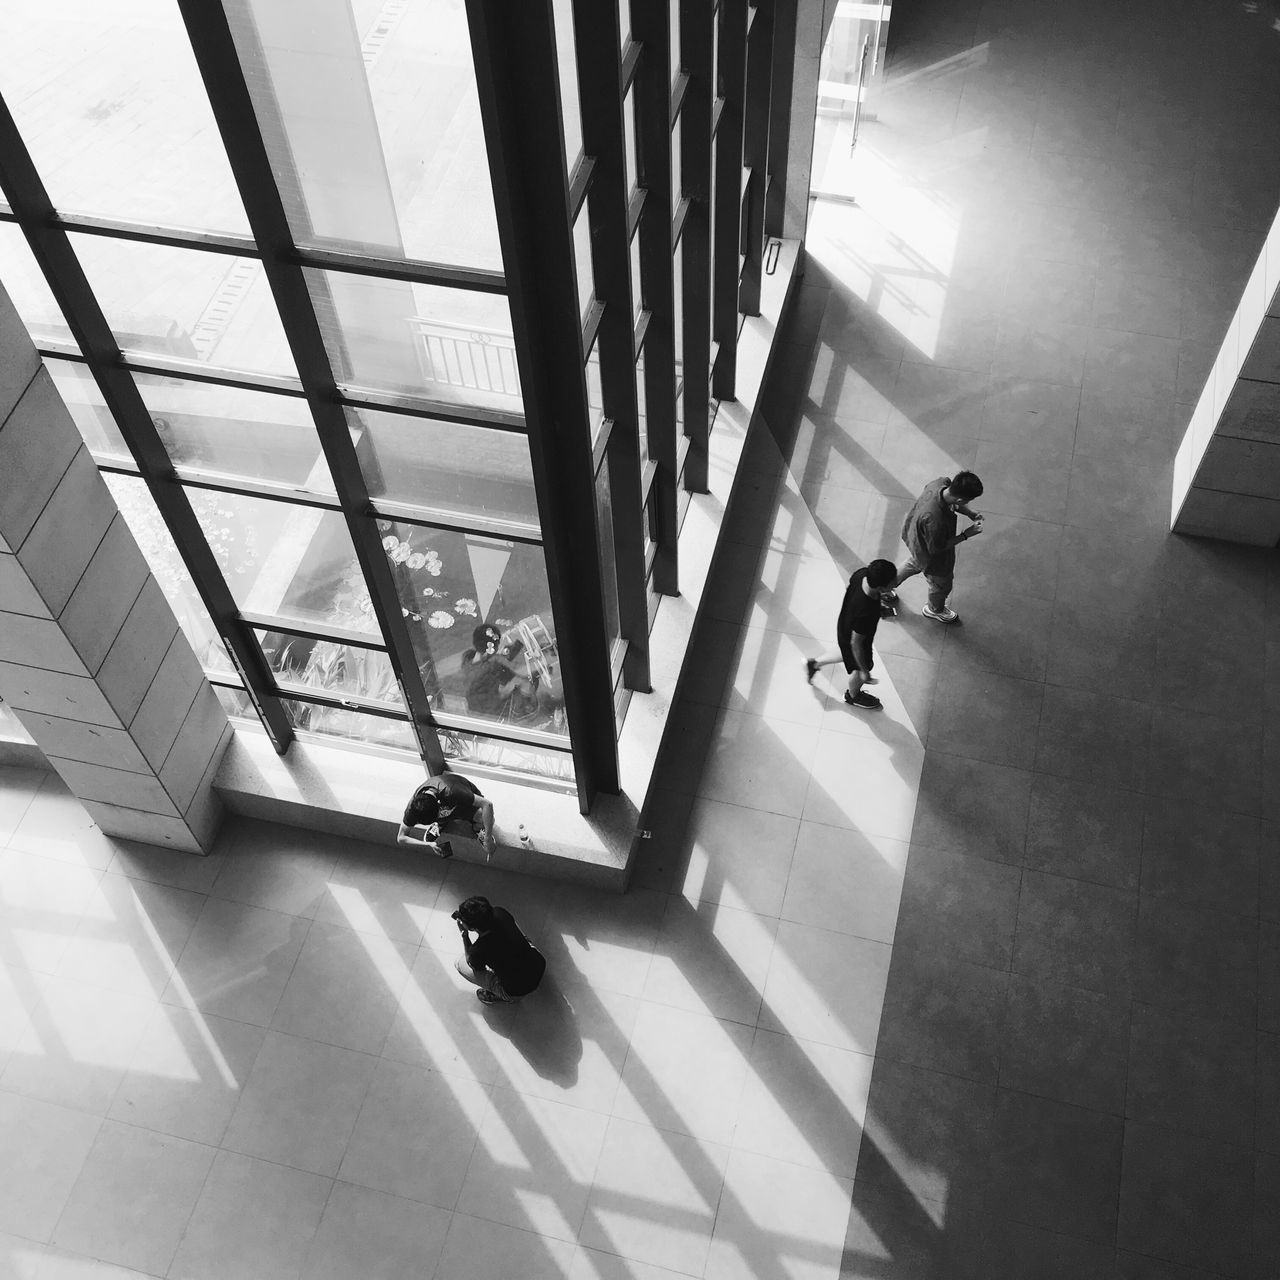 HIGH ANGLE VIEW OF MAN WALKING IN CORRIDOR OF BUILDING